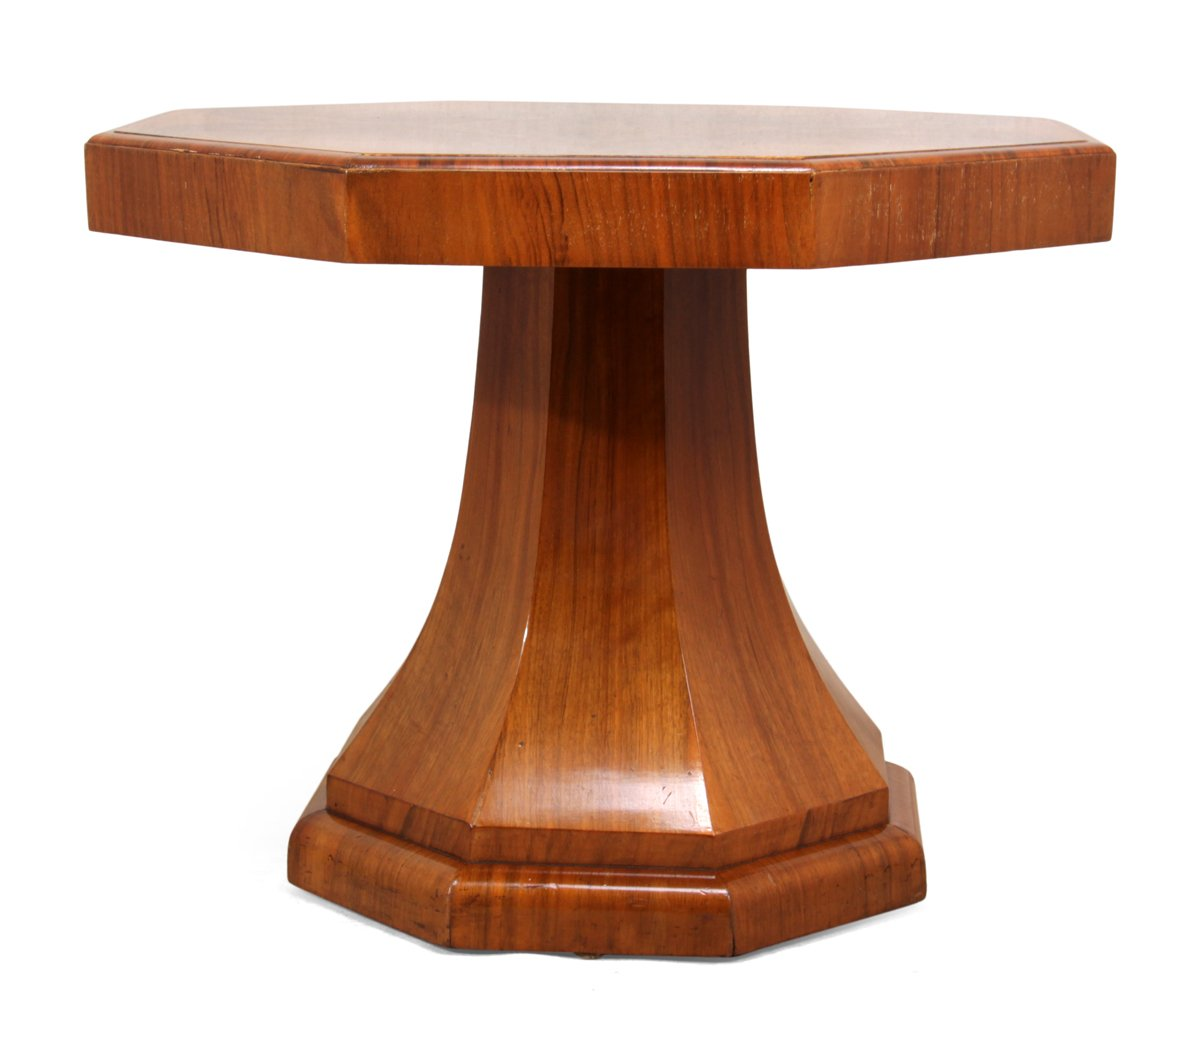 art deco cocktail table in walnut 1930s for sale at pamono. Black Bedroom Furniture Sets. Home Design Ideas